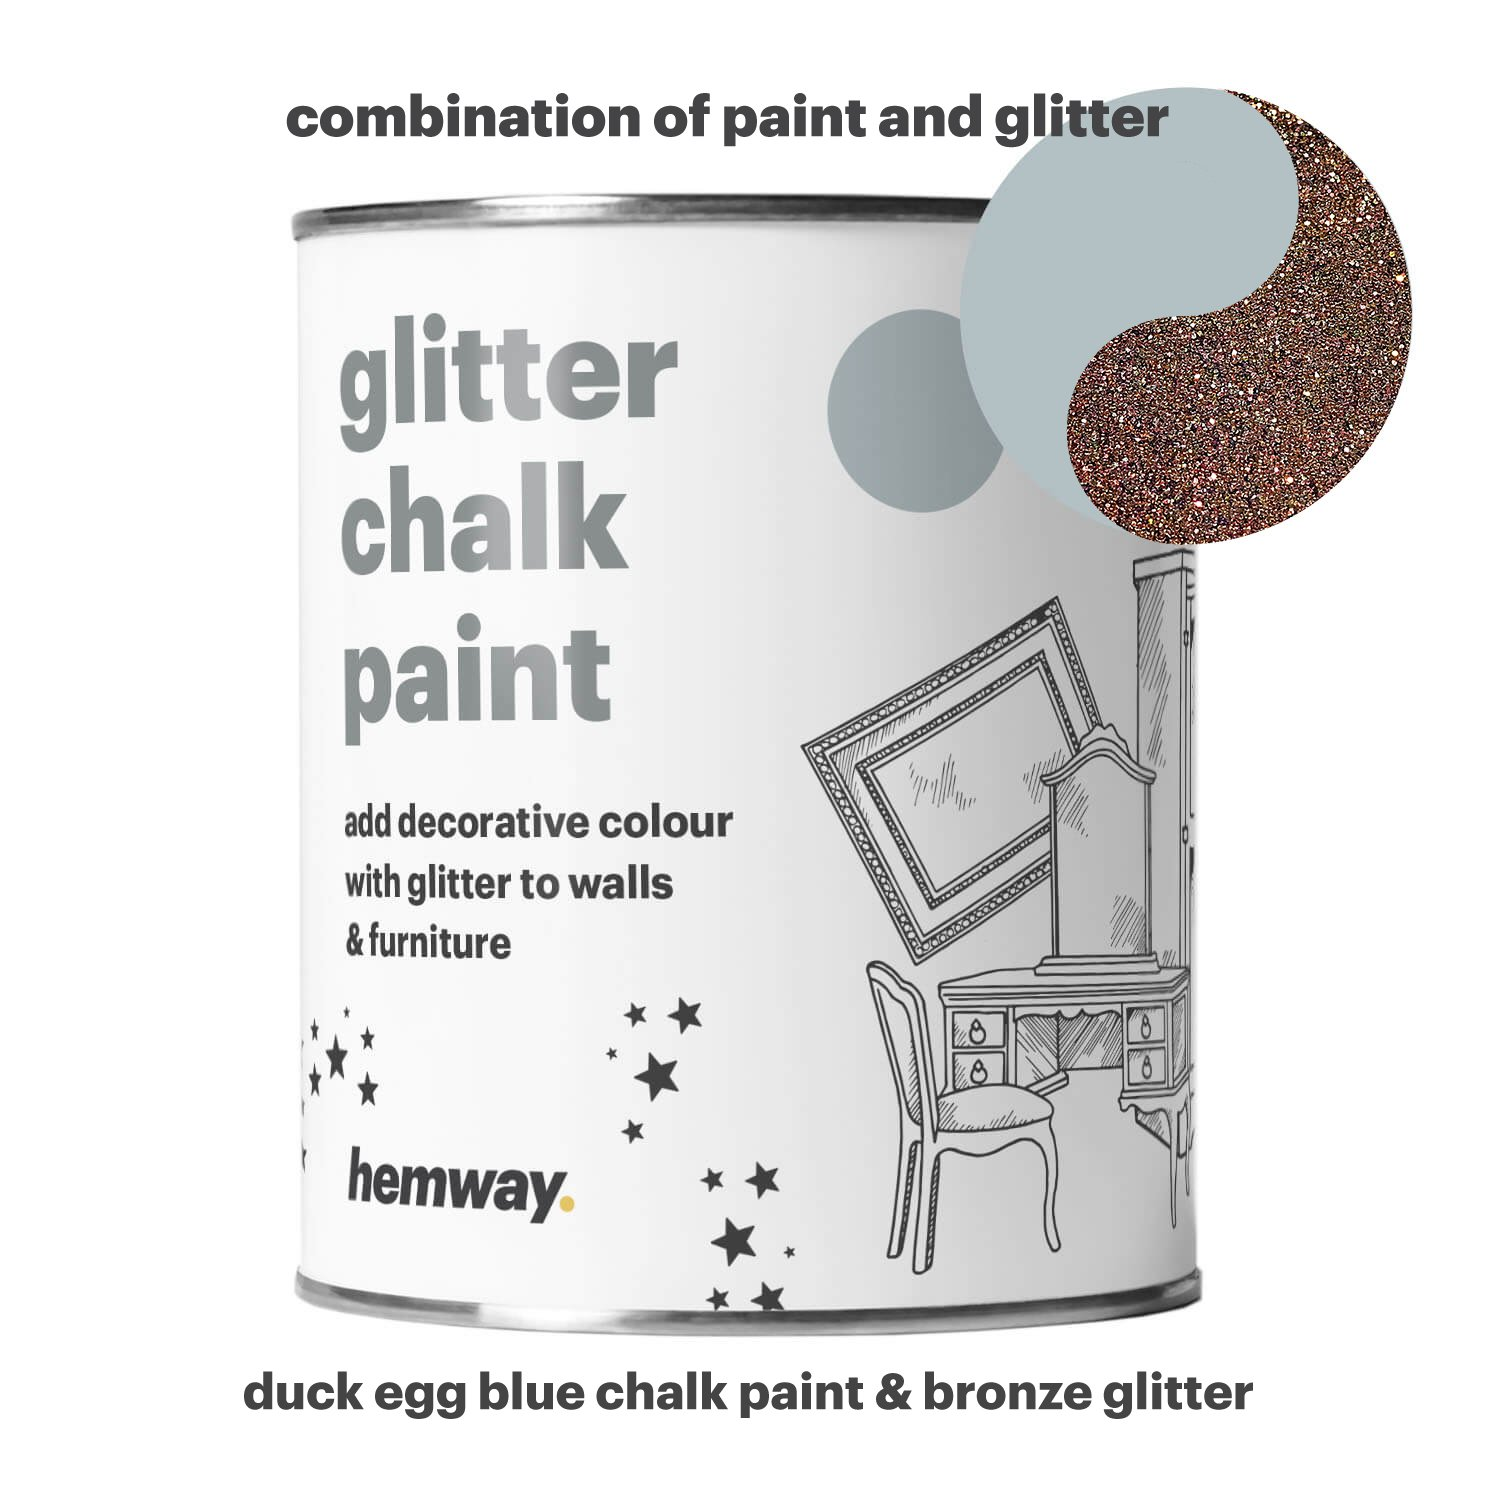 Hemway Duck Egg Blue Chalk Paint (with Bronze Glitter) Sparkle Matt finish Wall and Furniture Paint 1L/35oz Shabby Chic Vintage Chalky Crystal (25 Glittery Colours Available)